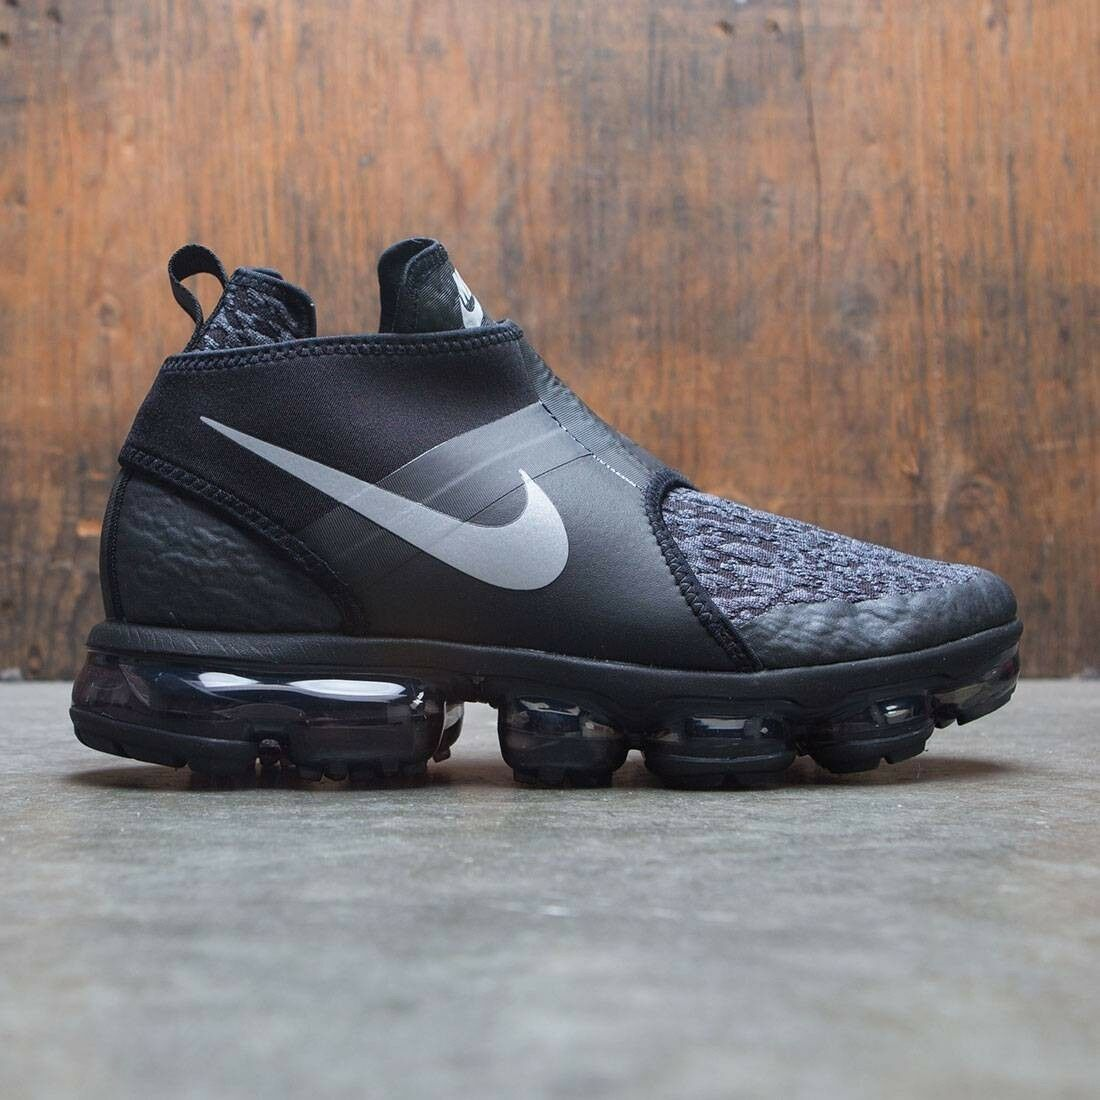 Nike Air Vapormax Chukka Slip Black Silver Comfortable Special limited time